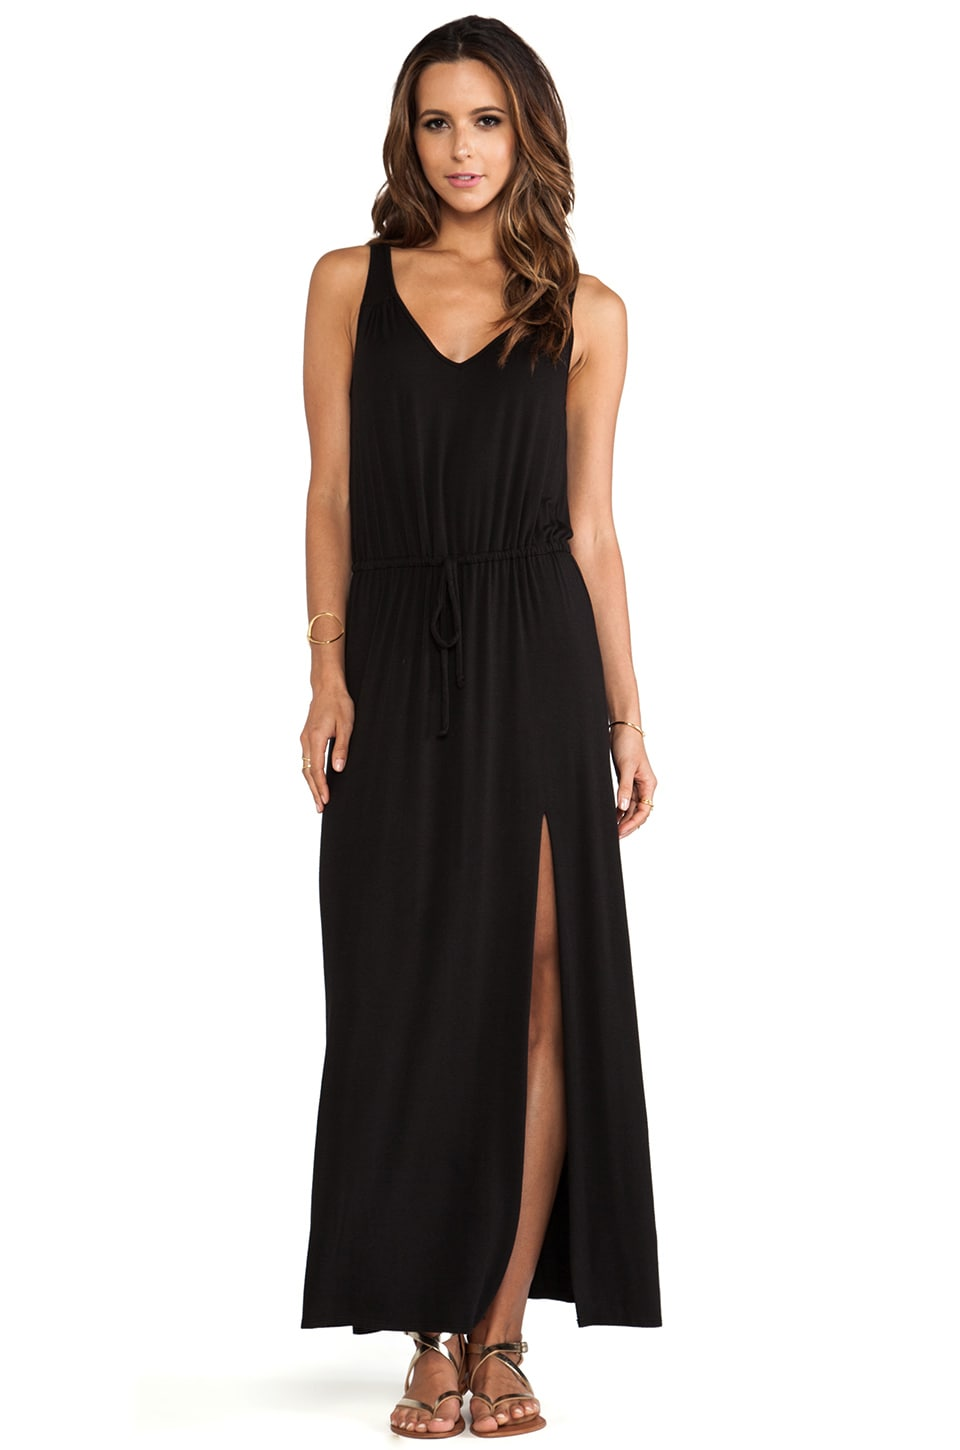 LA Made V Back Tie Maxi Dress in Black